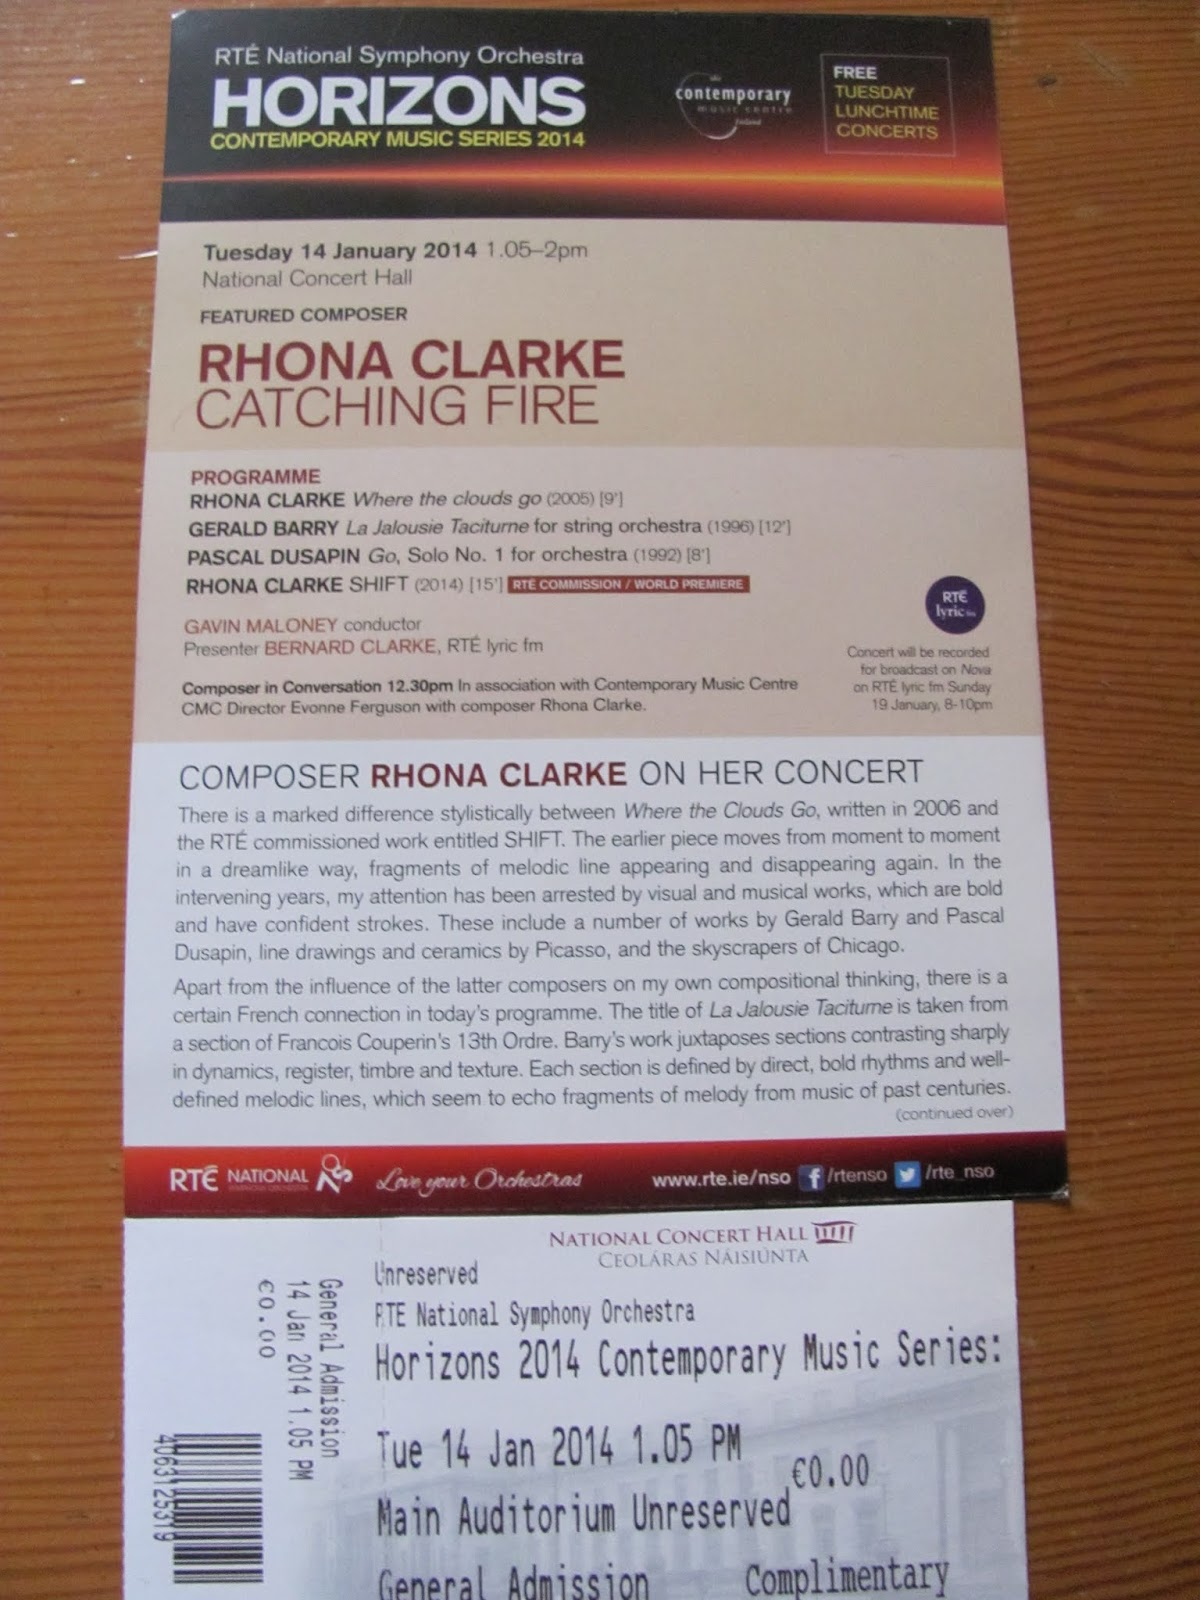 Ticket and Program for RTE National Symphony Orchestra